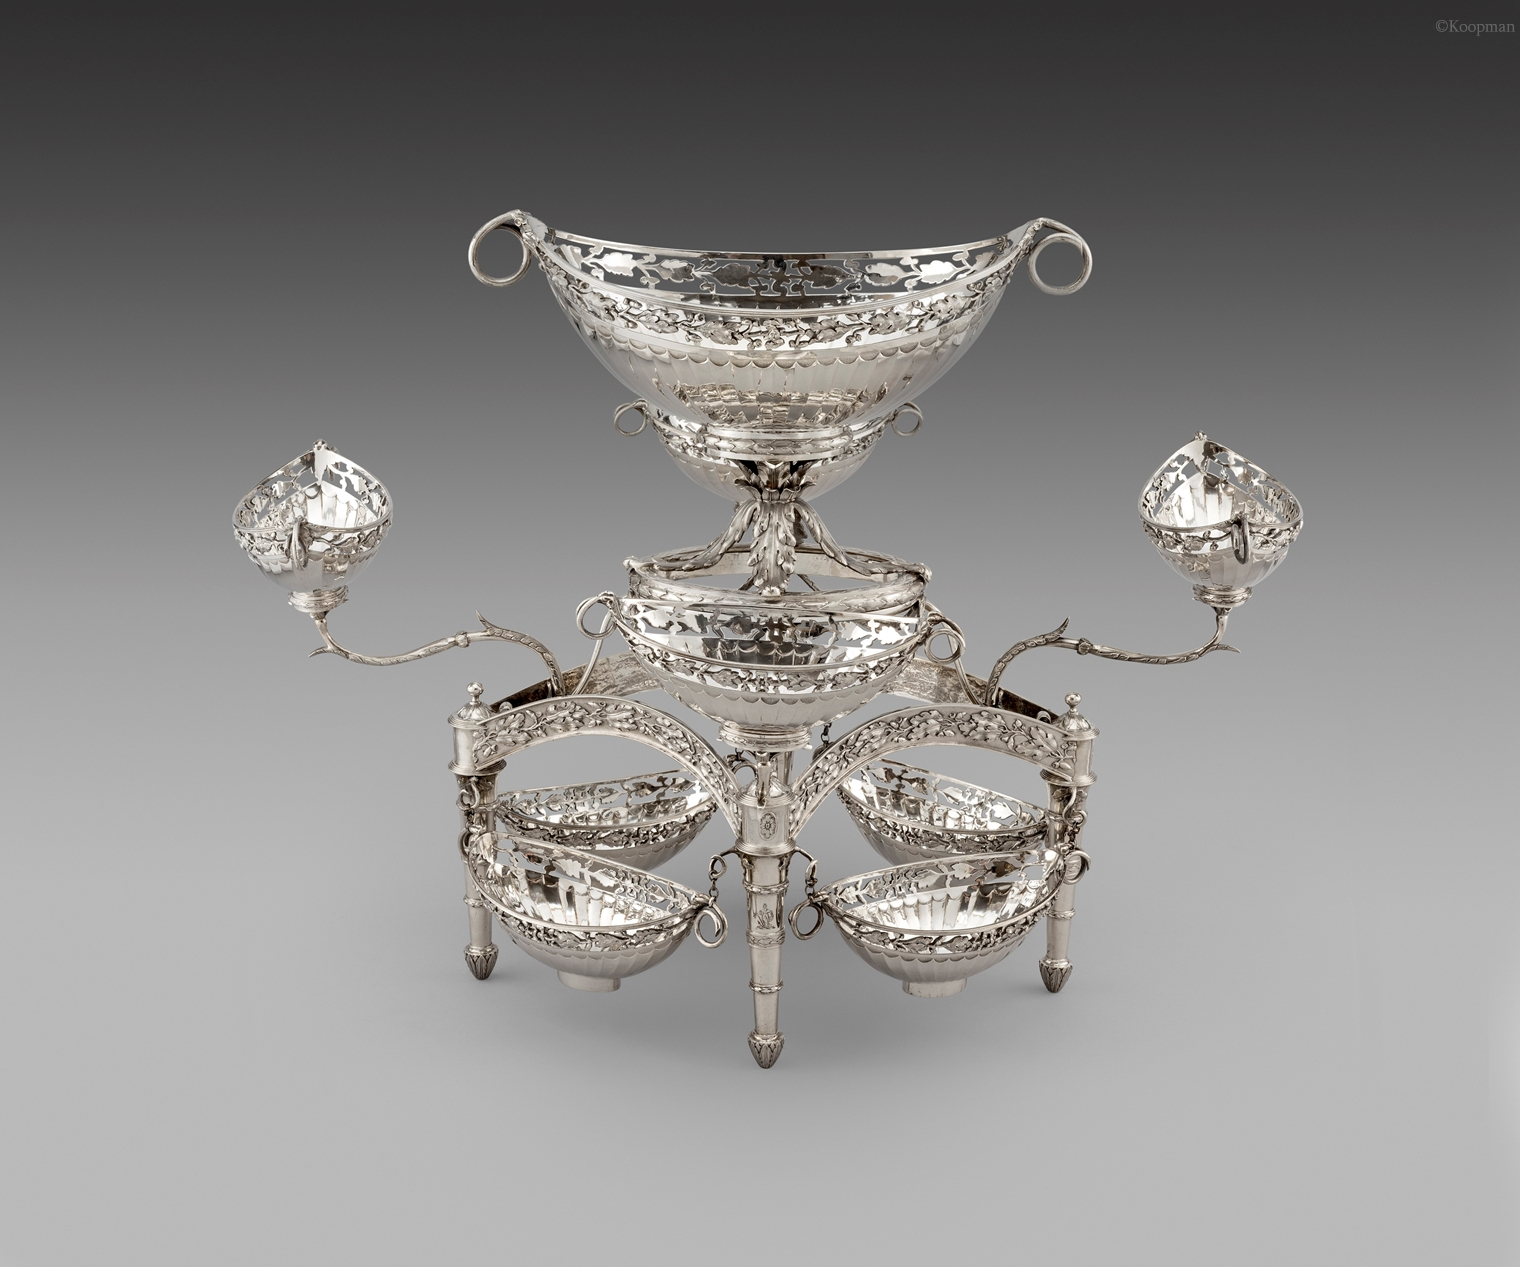 A Rare George III Nine Basket Silver Epergne Centrepiece